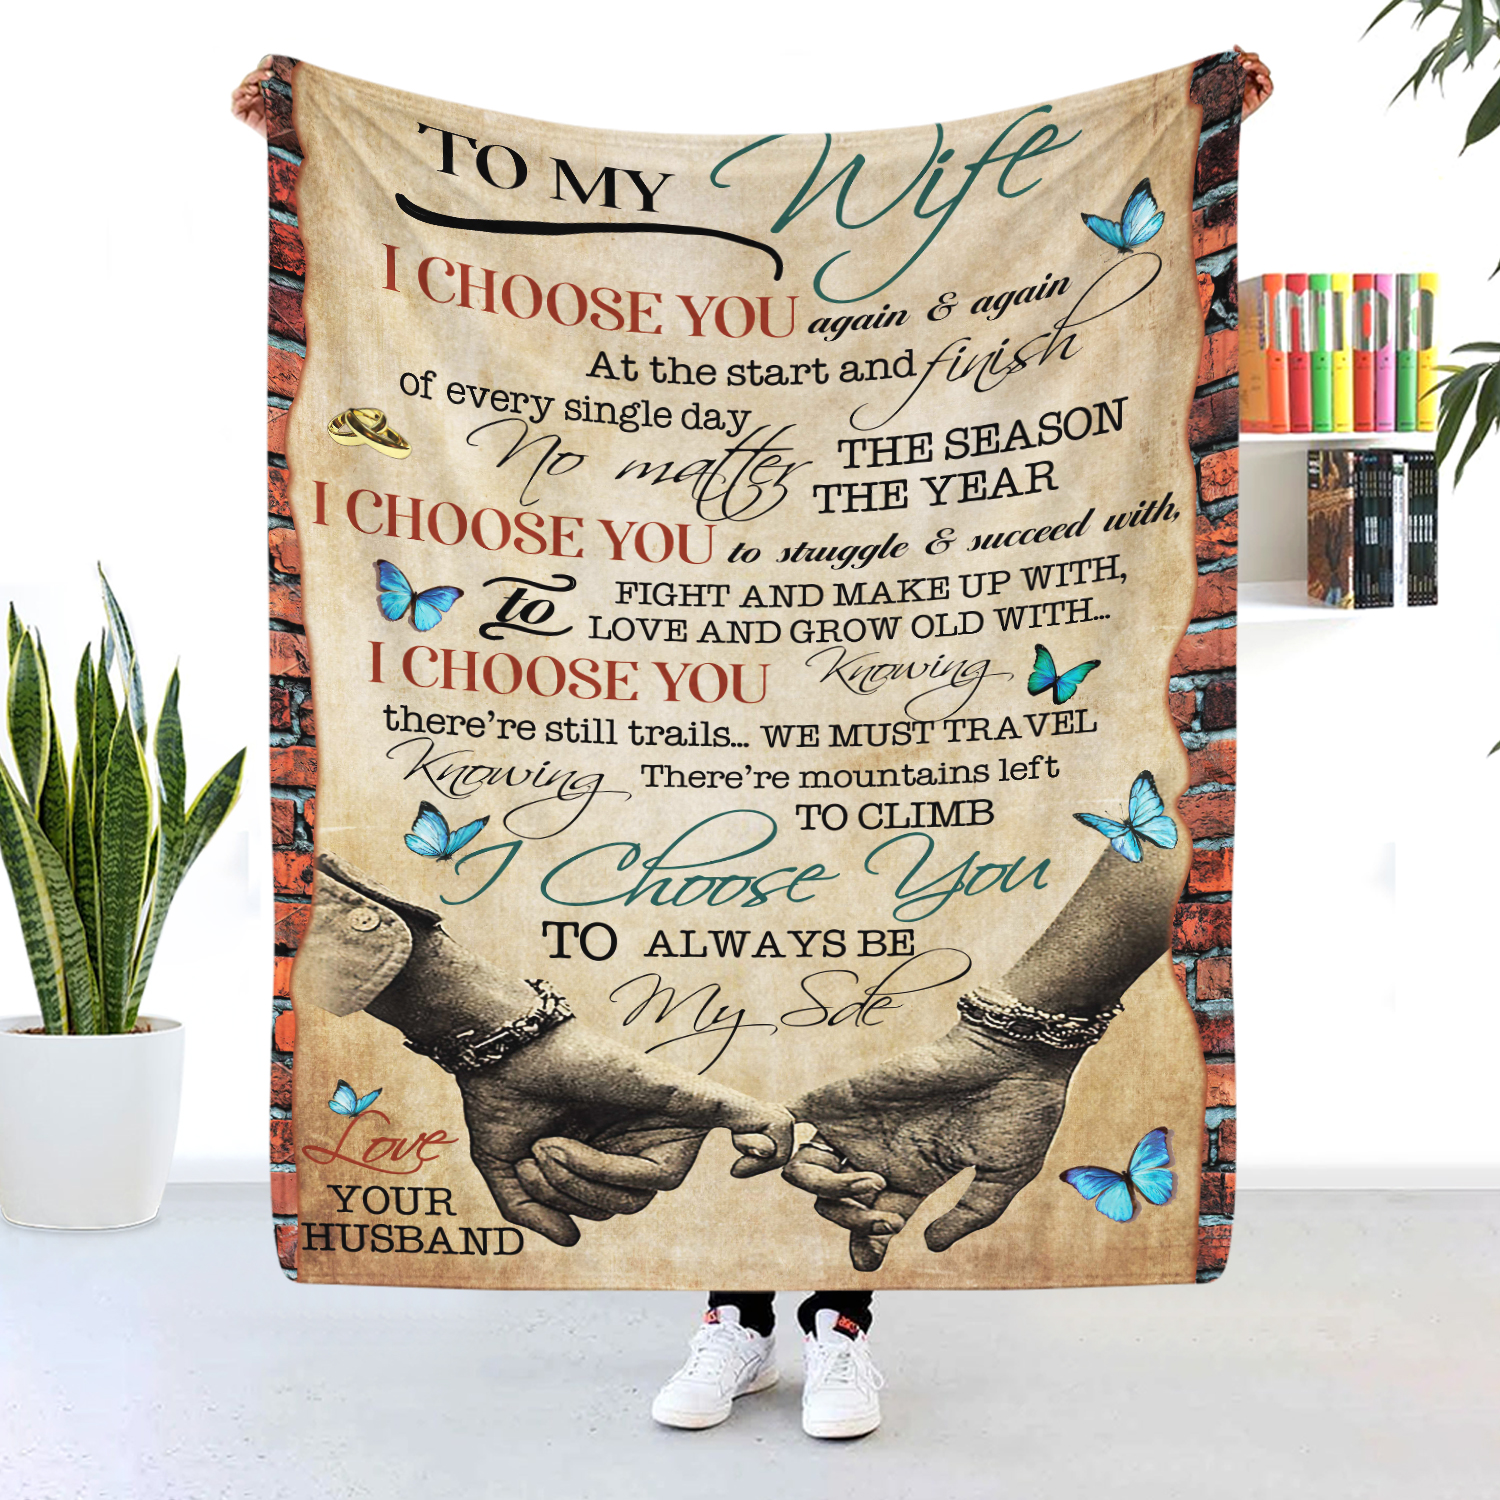 To My Wife I Choose You Again And Again Butterfly Blanket